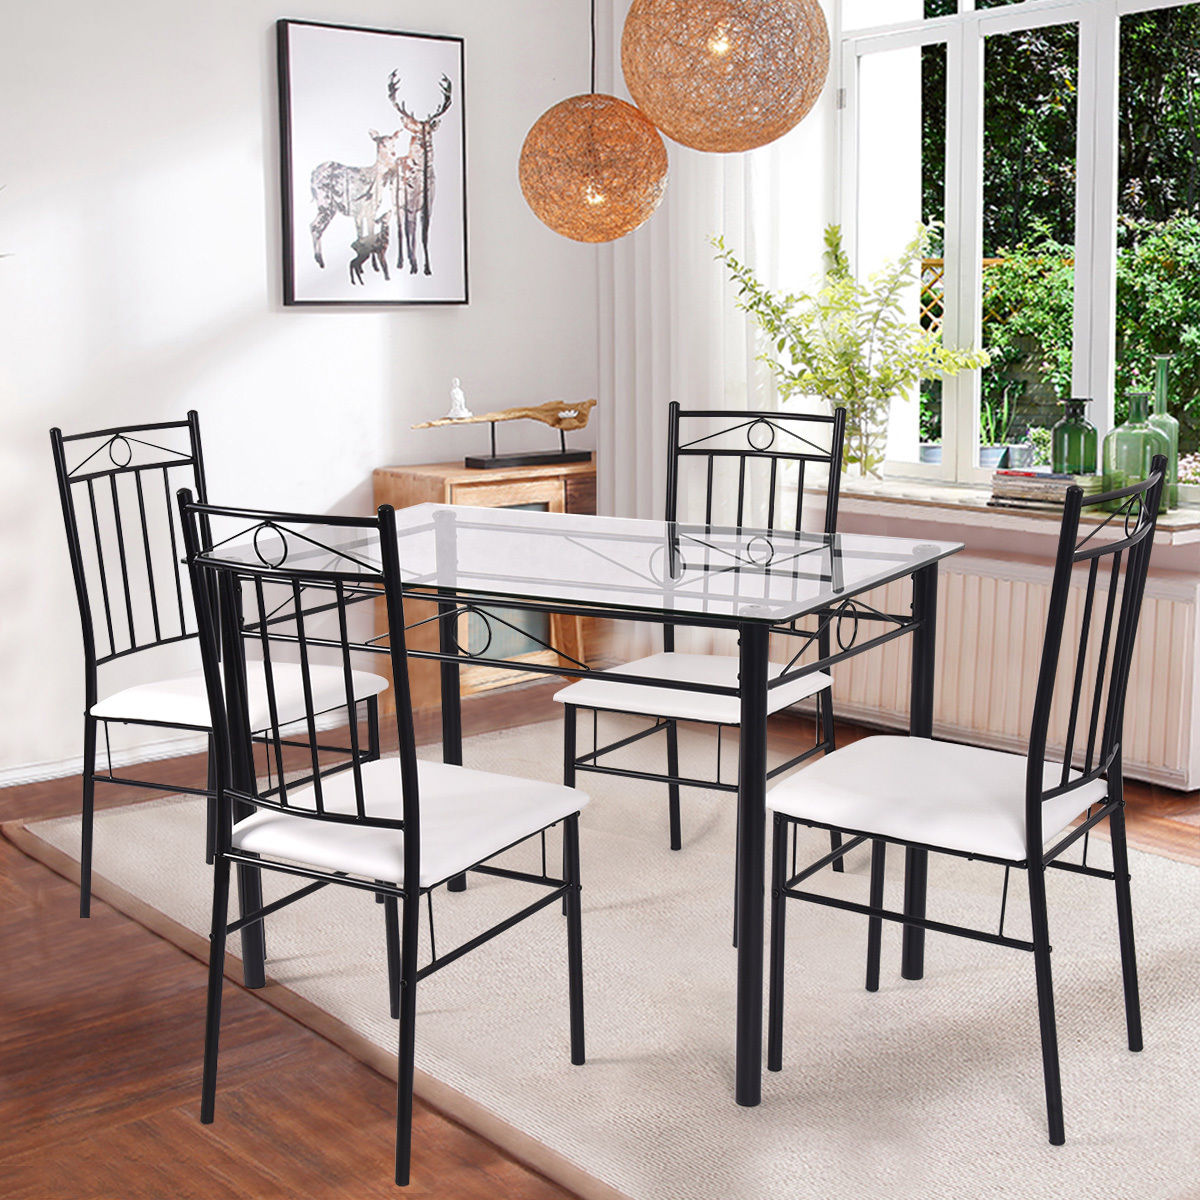 Costway 5 Piece Dining Set Glass Metal Table and 4 Chairs Kitchen Breakfast Furniture